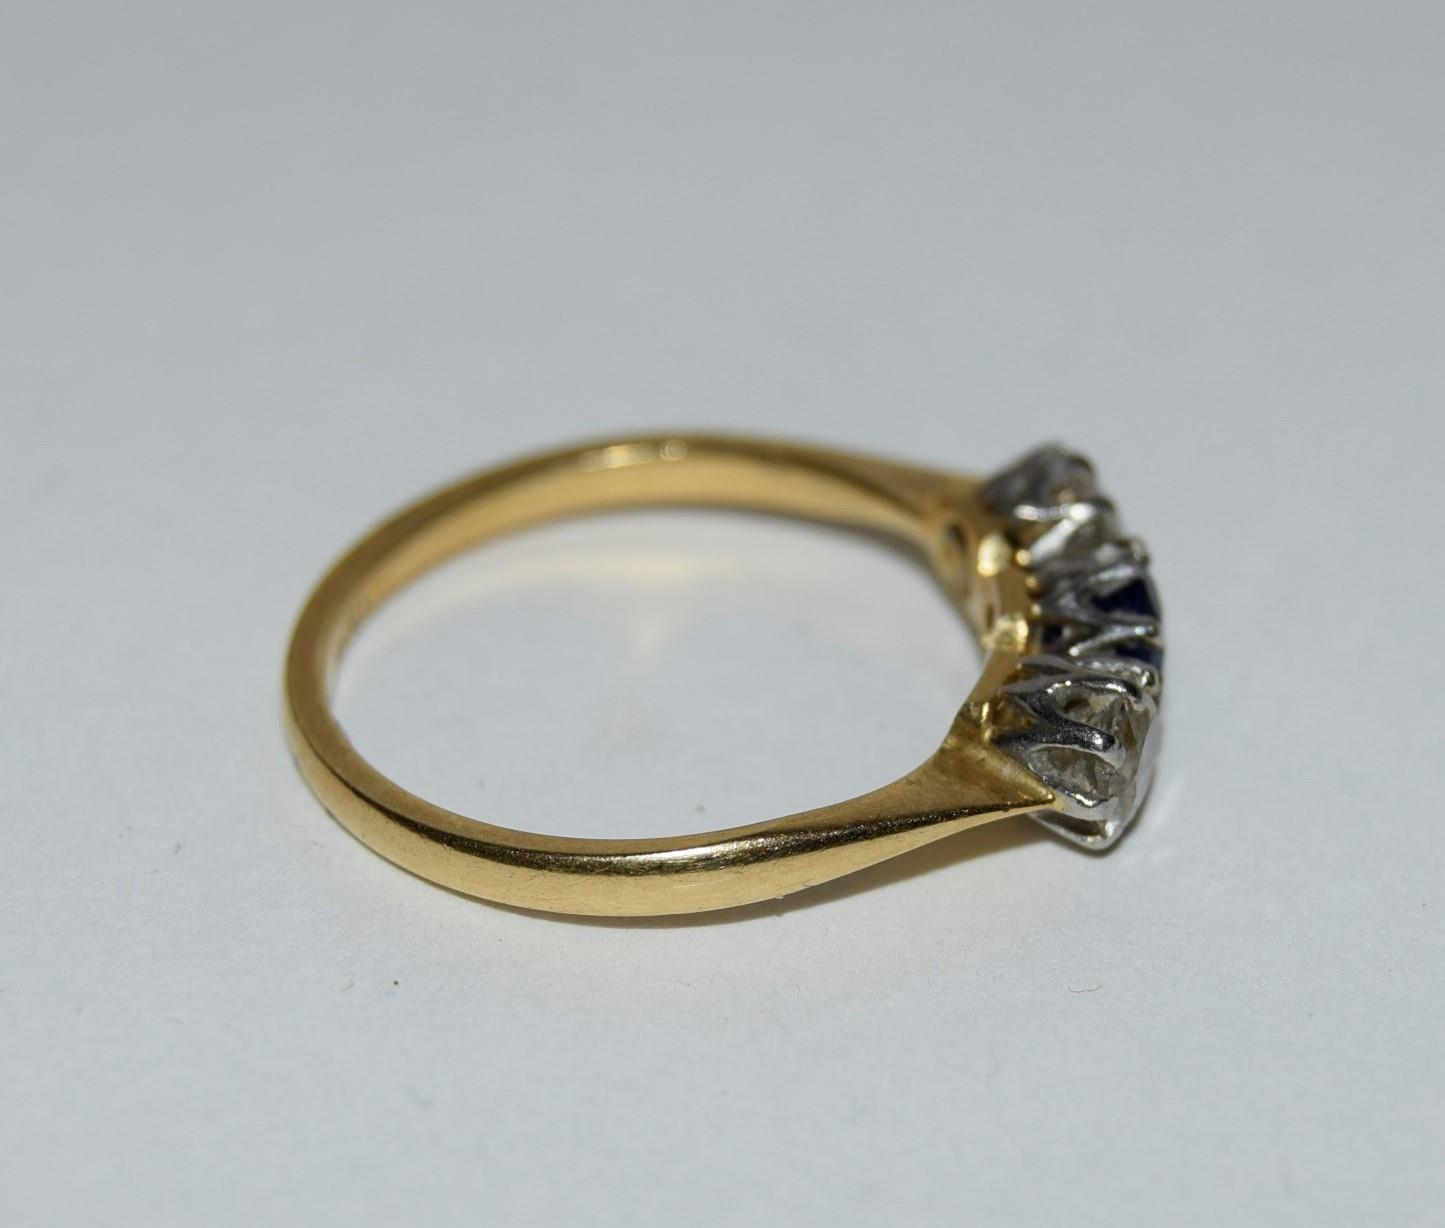 18ct gold and platinum ladies diamond and sapphire 3 stone ring approx 0.5ct diamond size L - Image 2 of 6